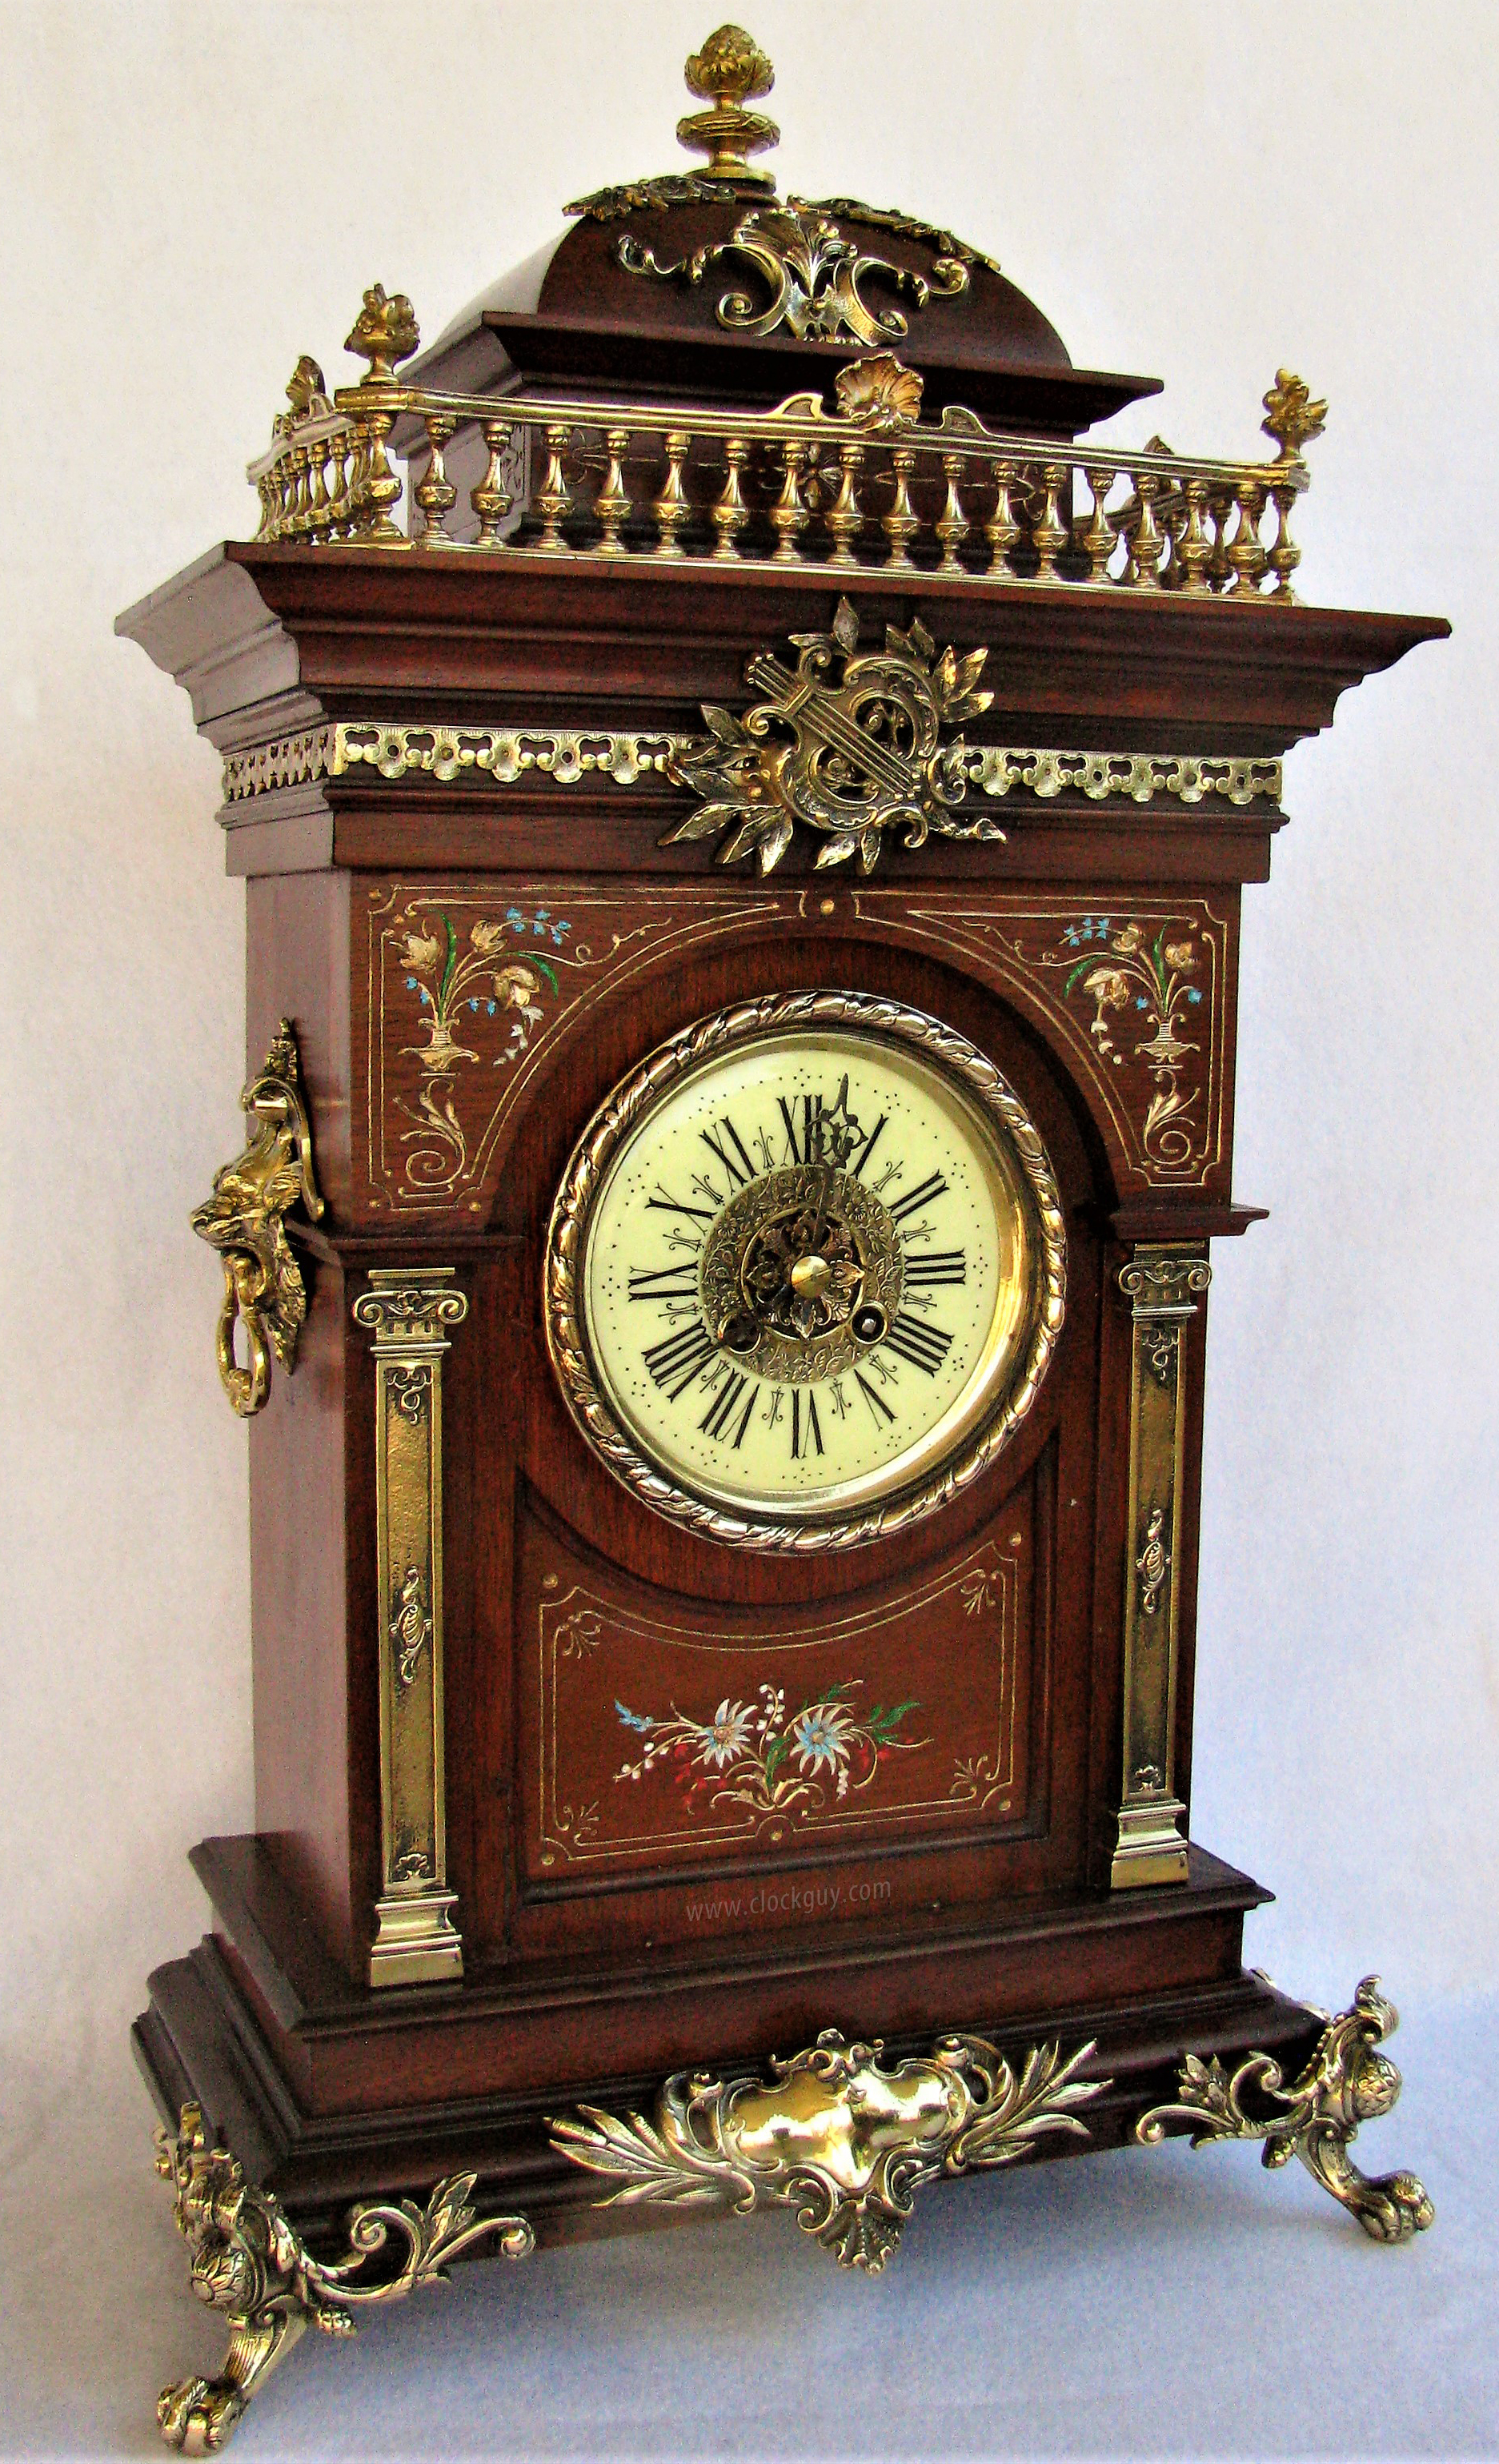 dating german cuckoo clocks Shop now for original cuckoo clocks made in germany, all are certified by the black forest cuckoo clock association or visit our myrtle beach store.